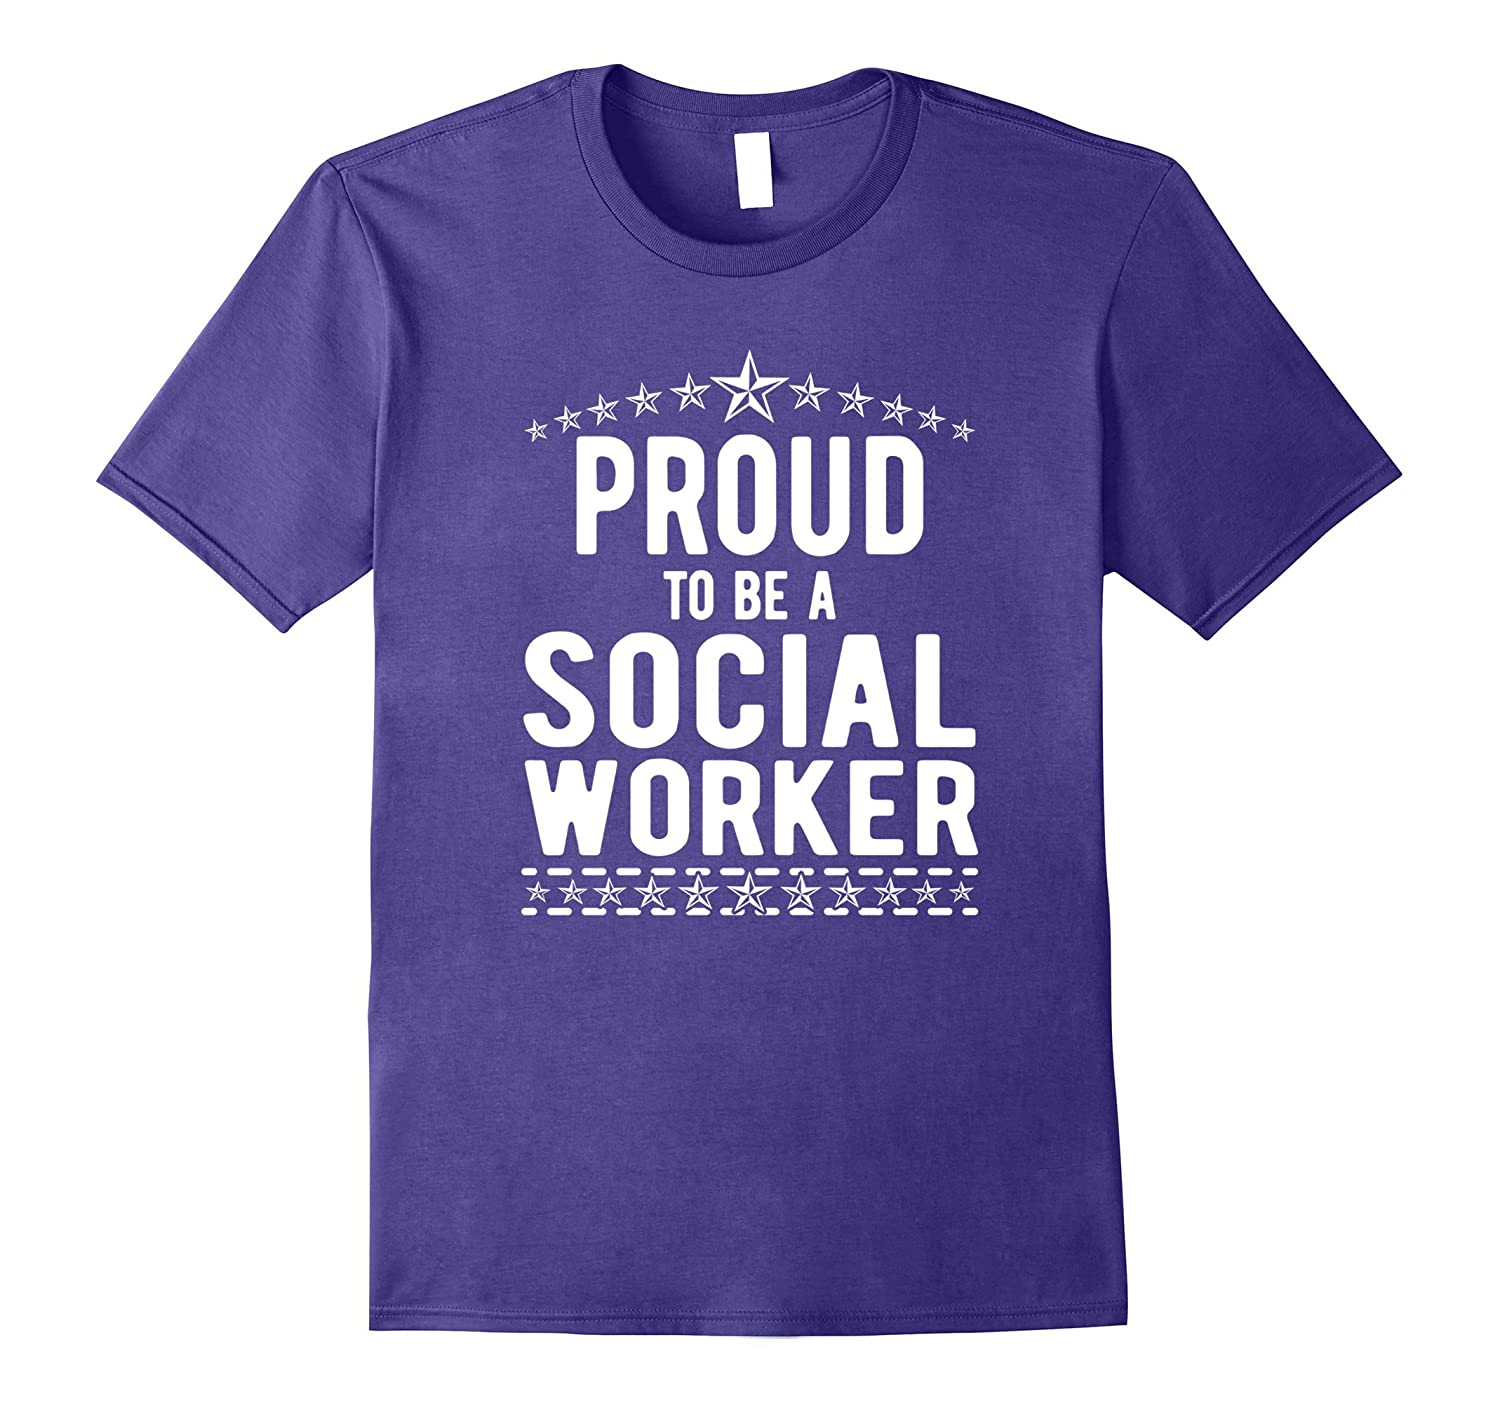 The Official Proud to Be a Social Worker T-Shirt-TJ